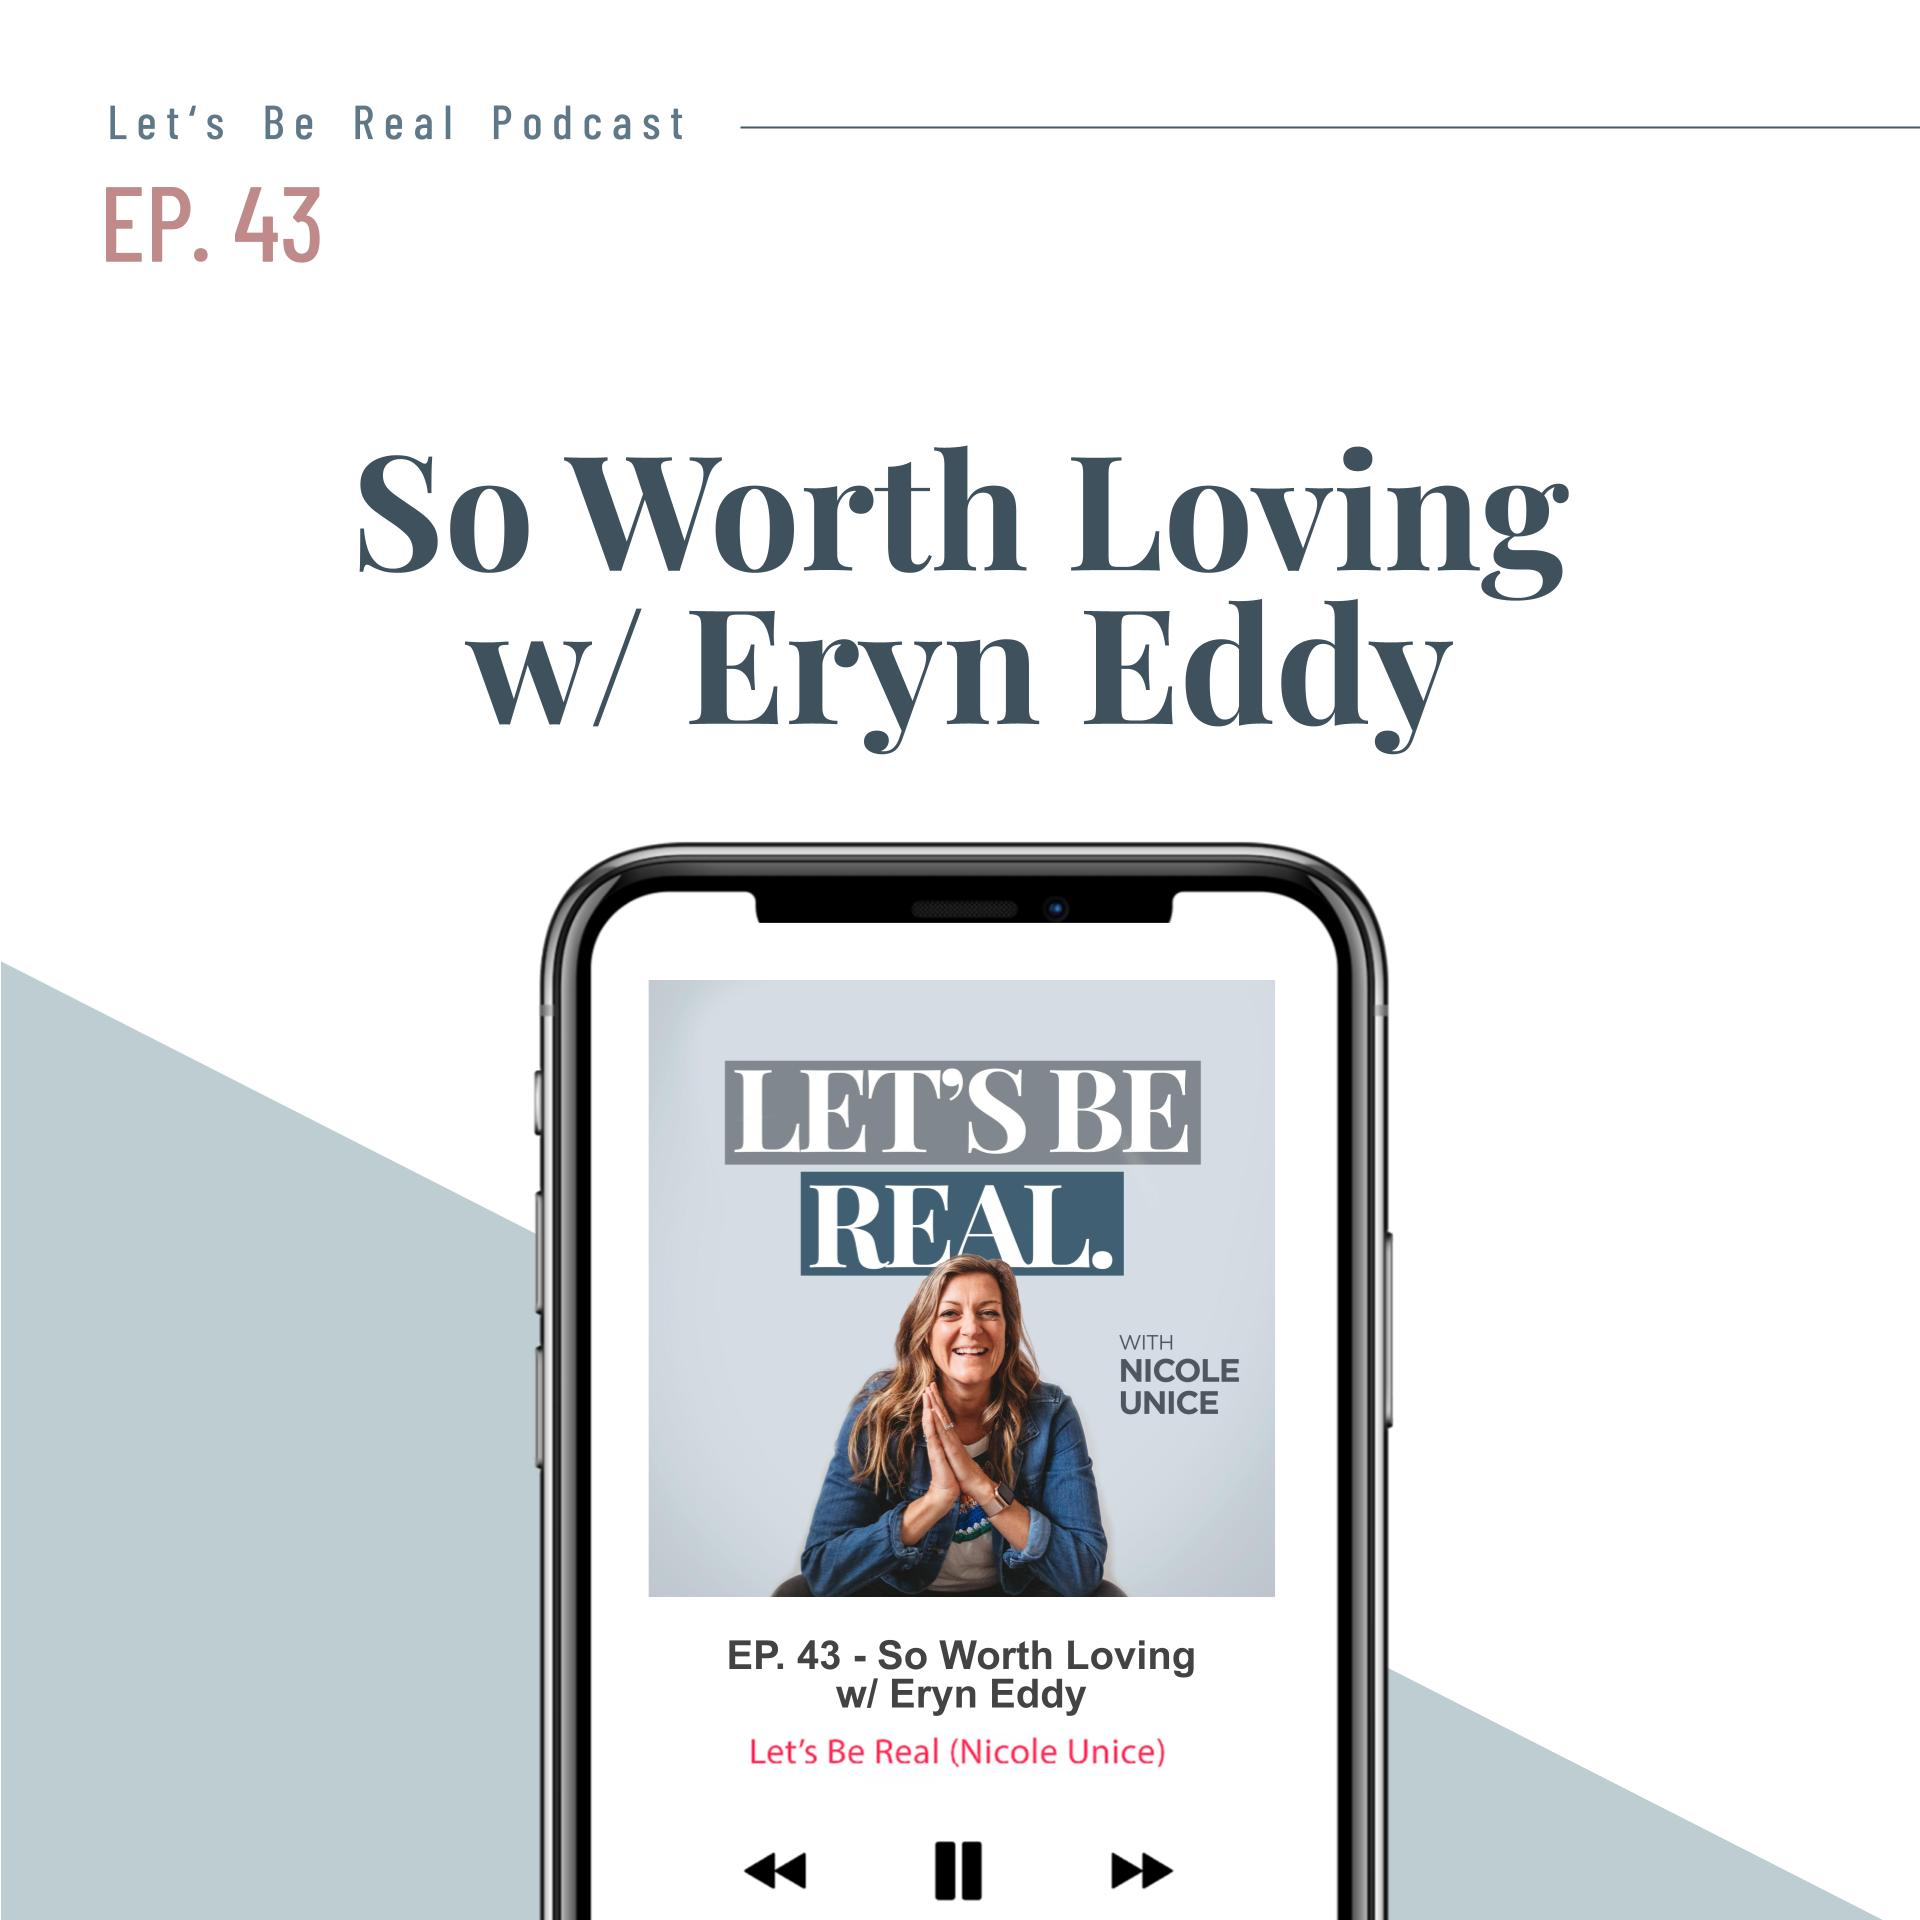 So Worth Loving with Eryn Eddy | Let's Be Real Podcast, Ep. 43